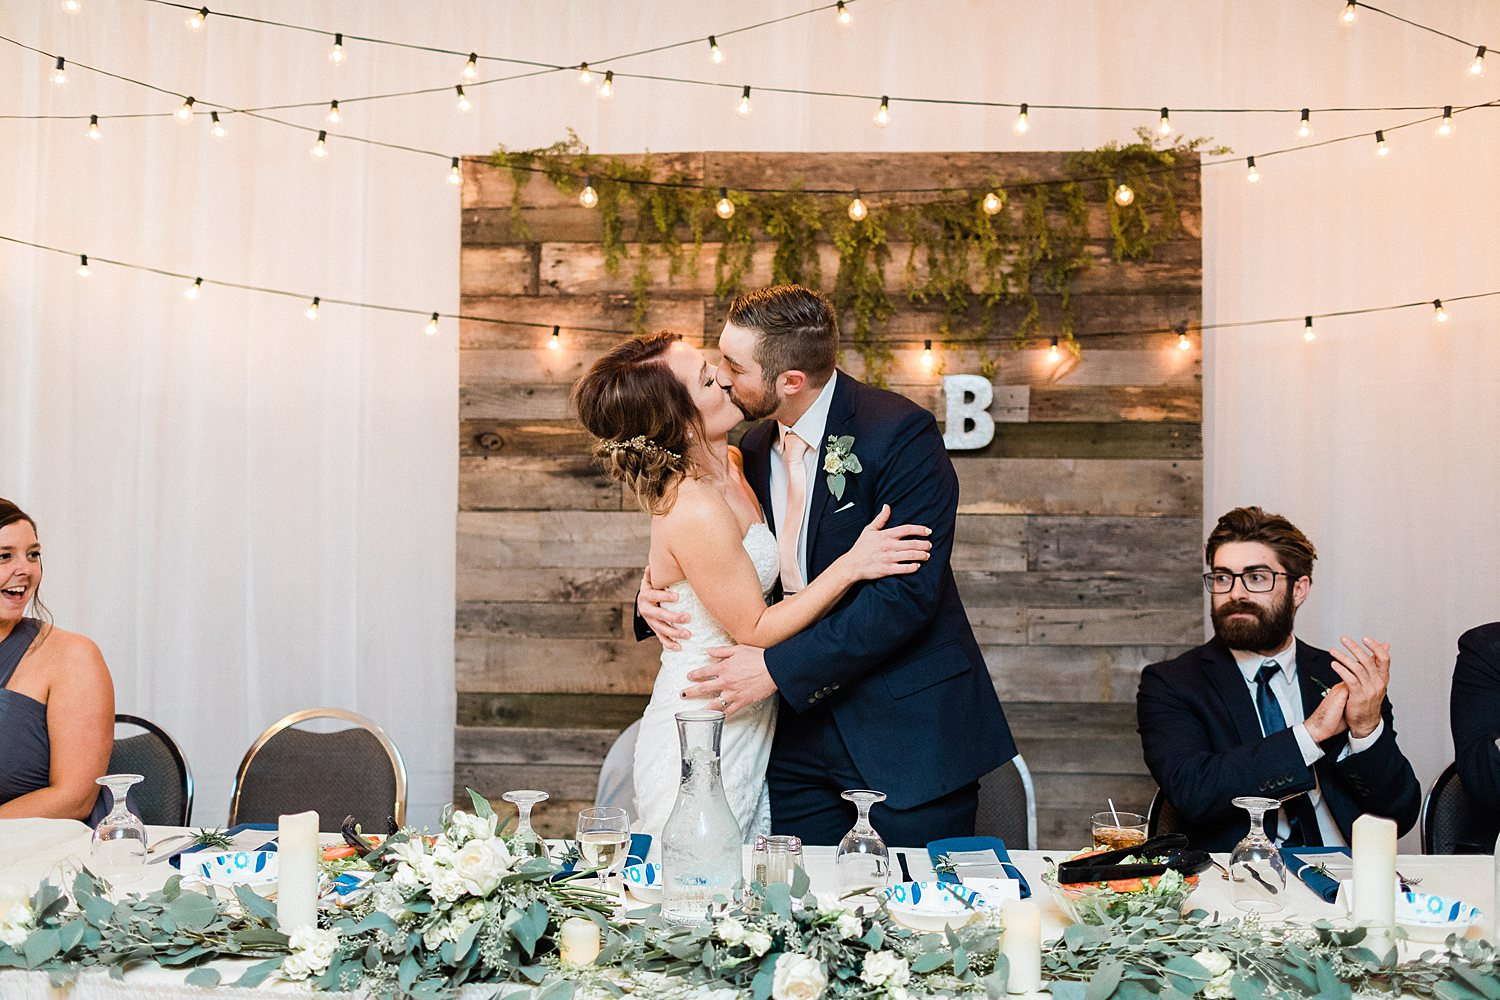 North_Central_Wisconsin_Event_Wedding_Venues_Fall_Weddings_The_Bailiwick_Venue_James-Stokes-Photography100.jpg